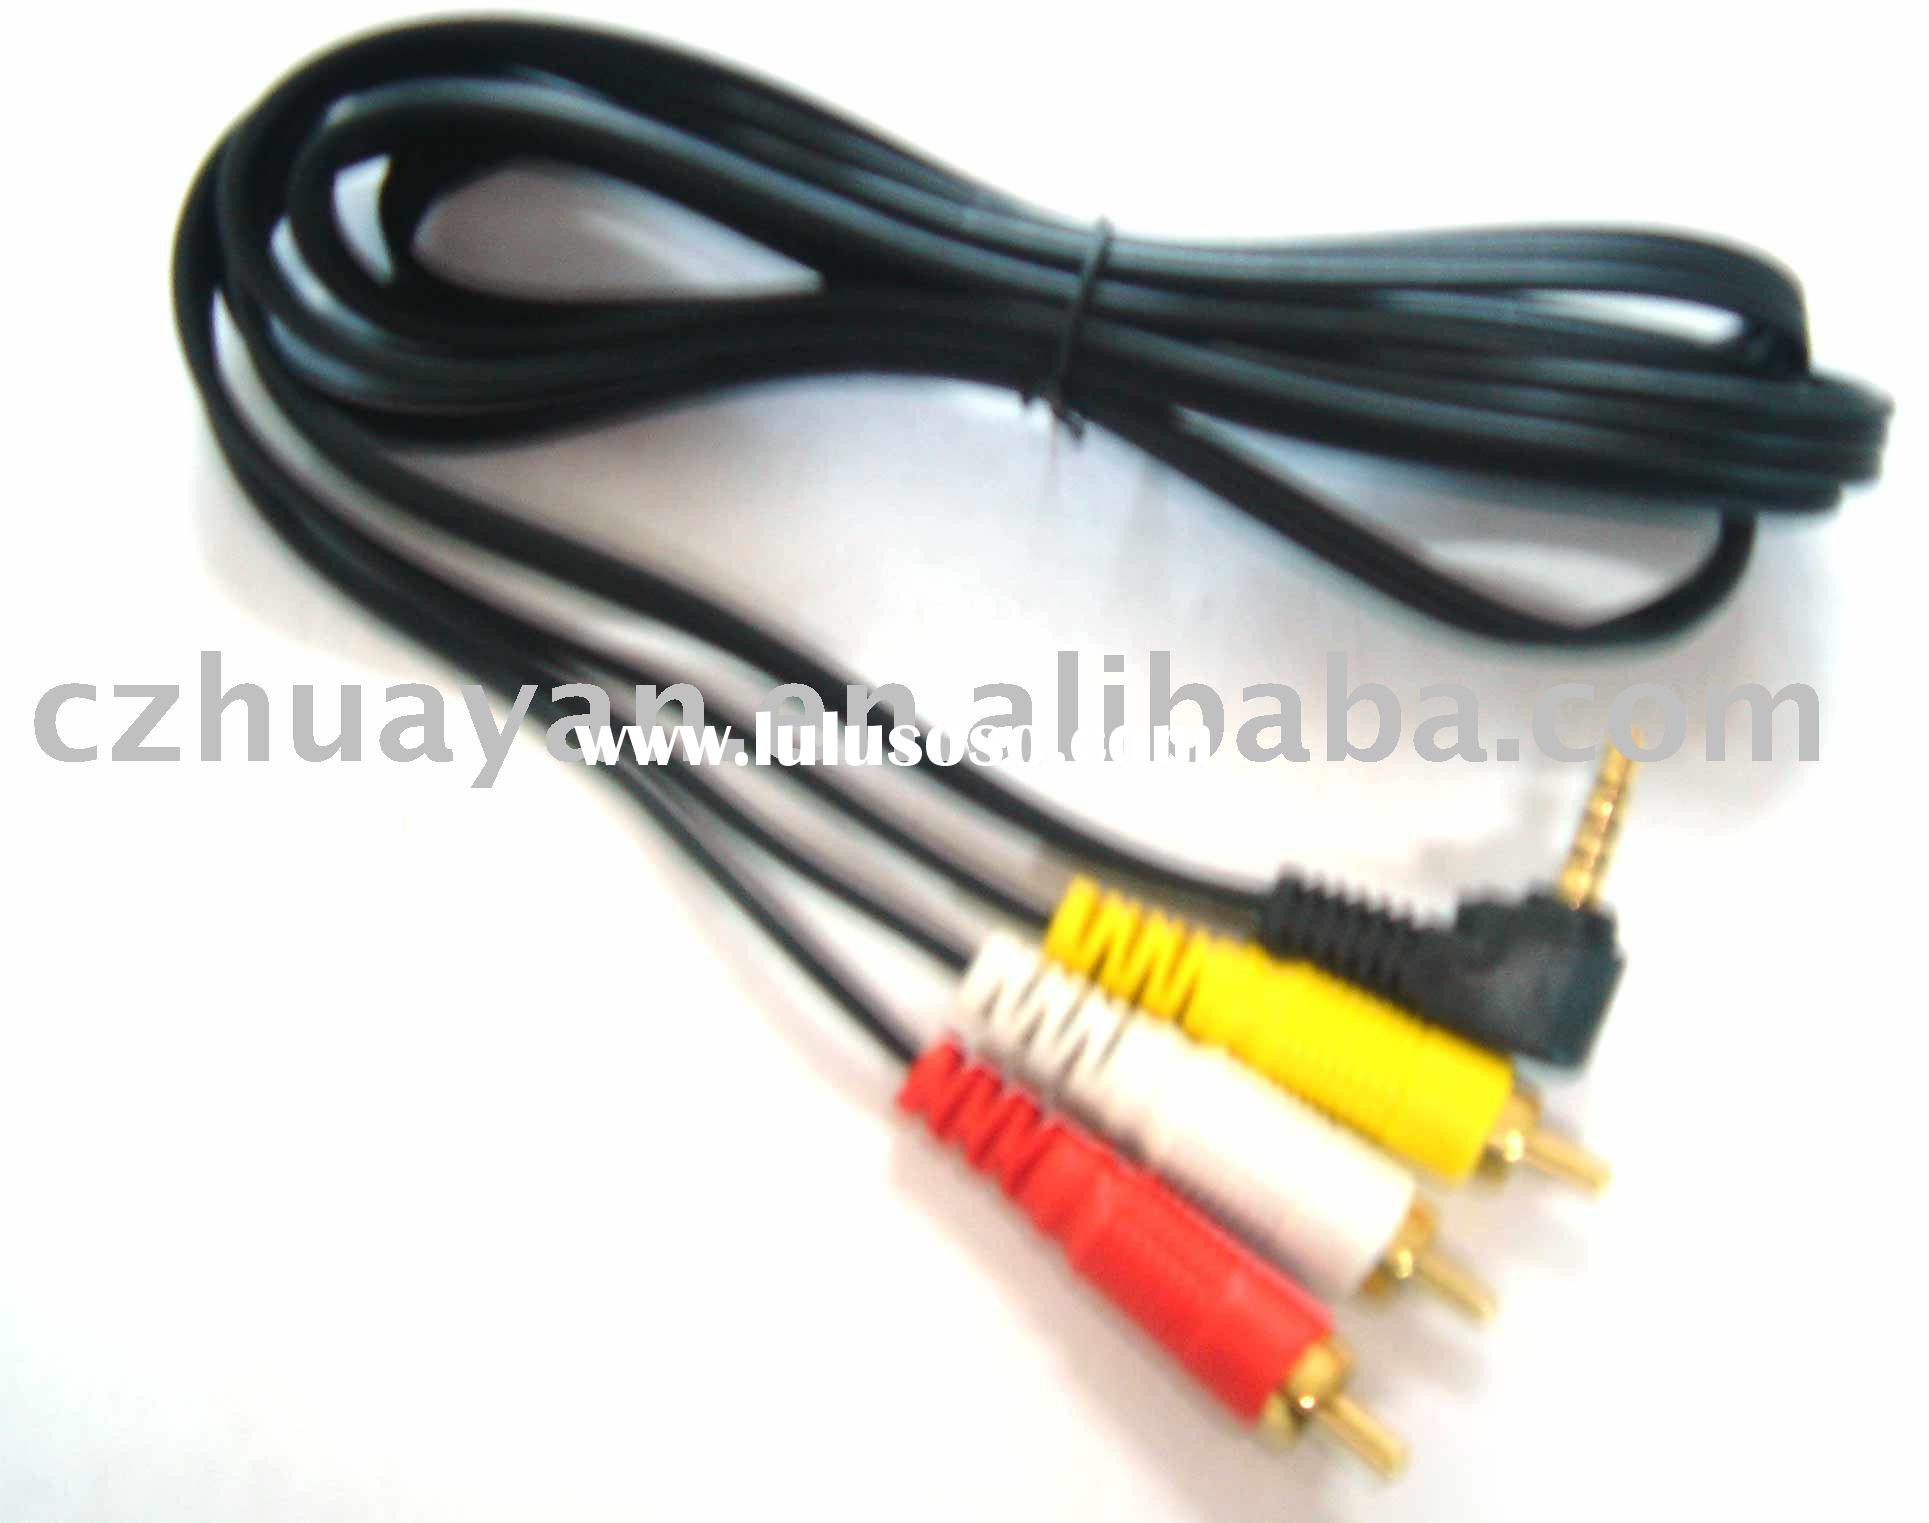 Audio Cable Types : Video cable types manufacturers in